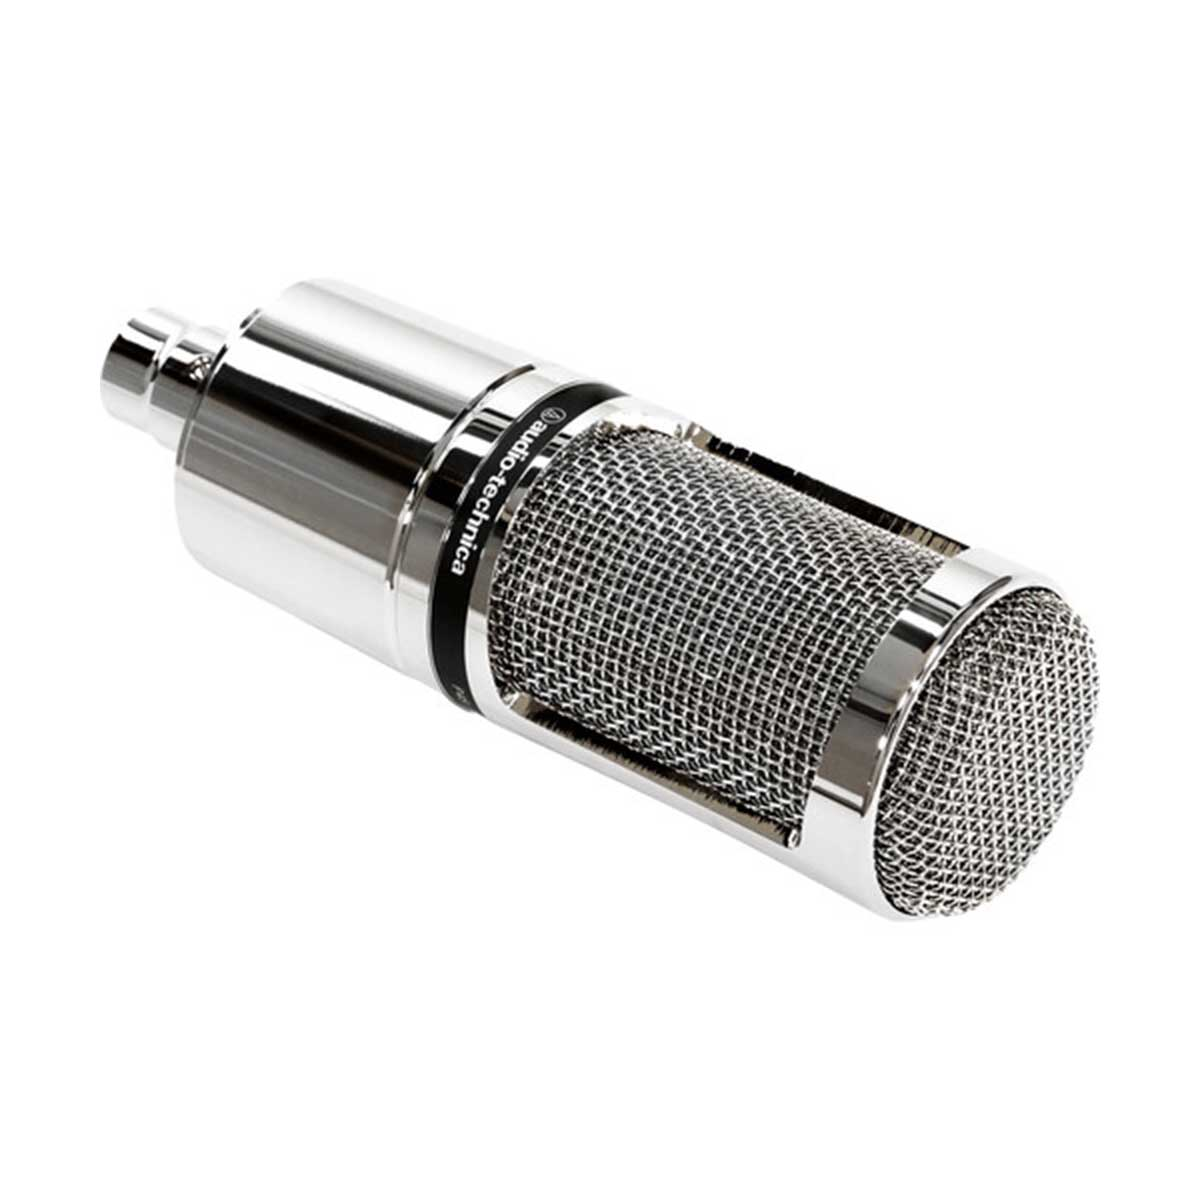 Audio-Technica AT2020USB+V LIMITED EDITION Cardioid Condenser USB Microphone